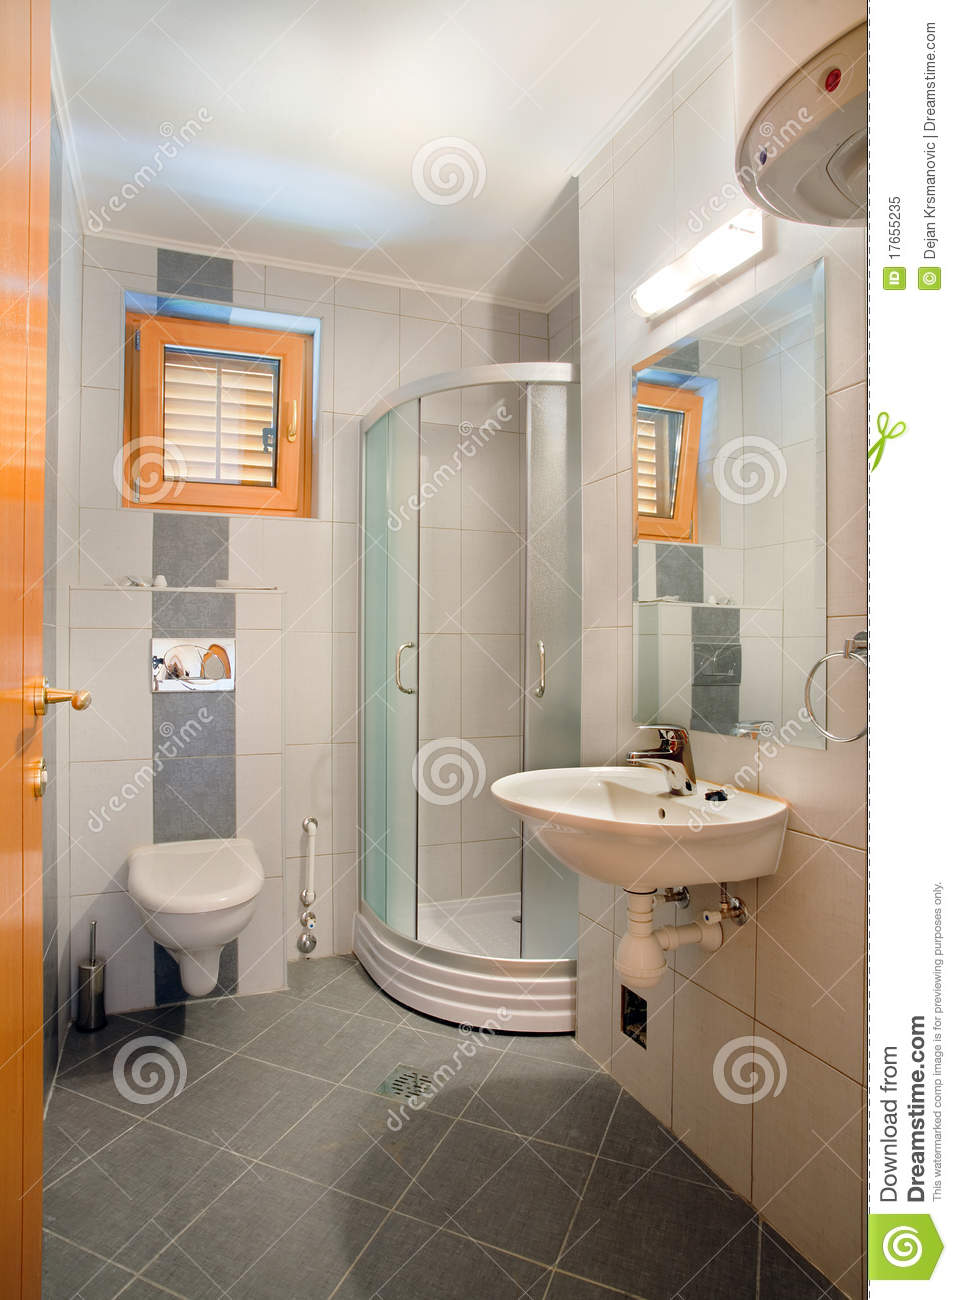 Small Bathroom Royalty Free Stock Photo Image 17655235